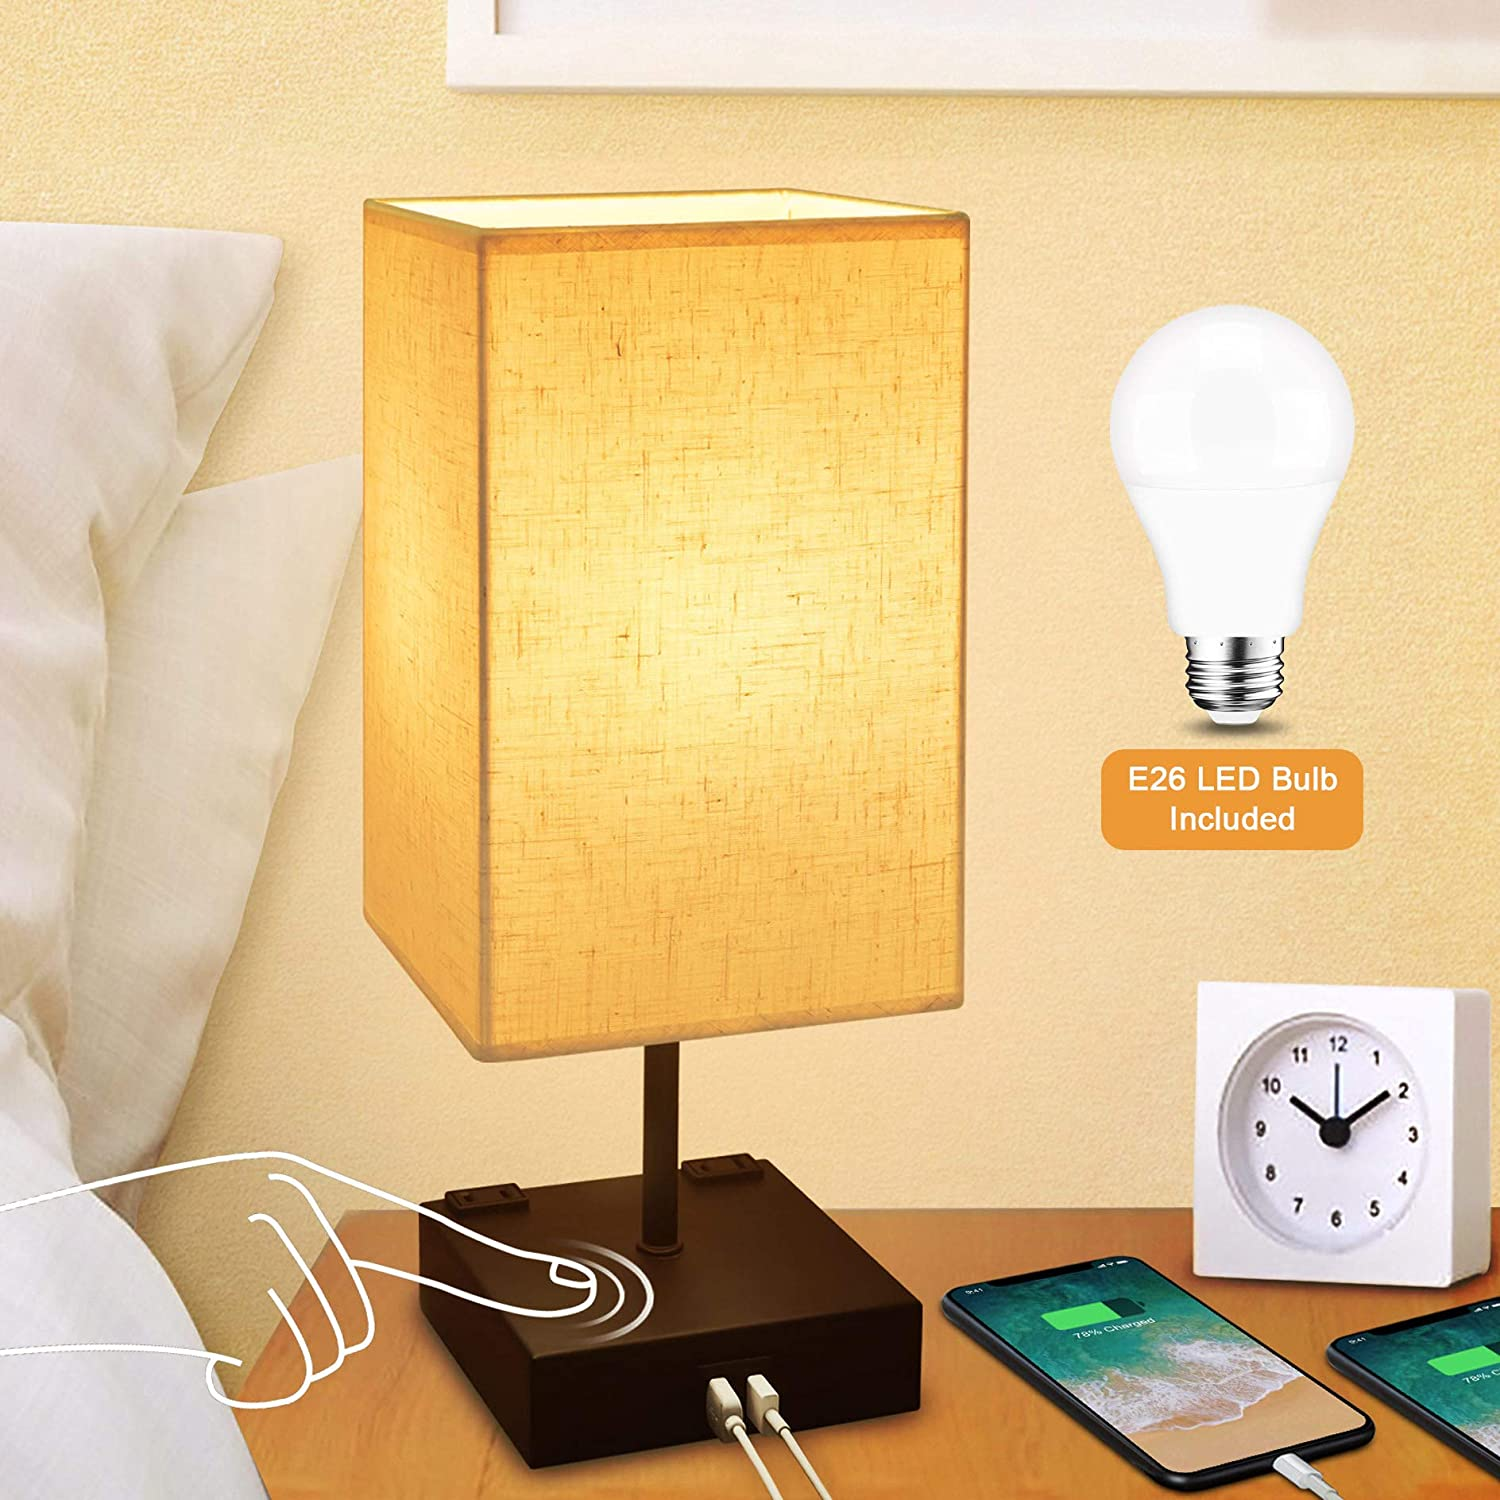 Dimmable 3-Way Touch Control Bedside Lamp,Cotanic Modern Table Lamp with USB Charging Ports,Square Fabric Linen Lampshade,Decorative Nightstand Lamps for Bedroom,E26 LED Bulb Included